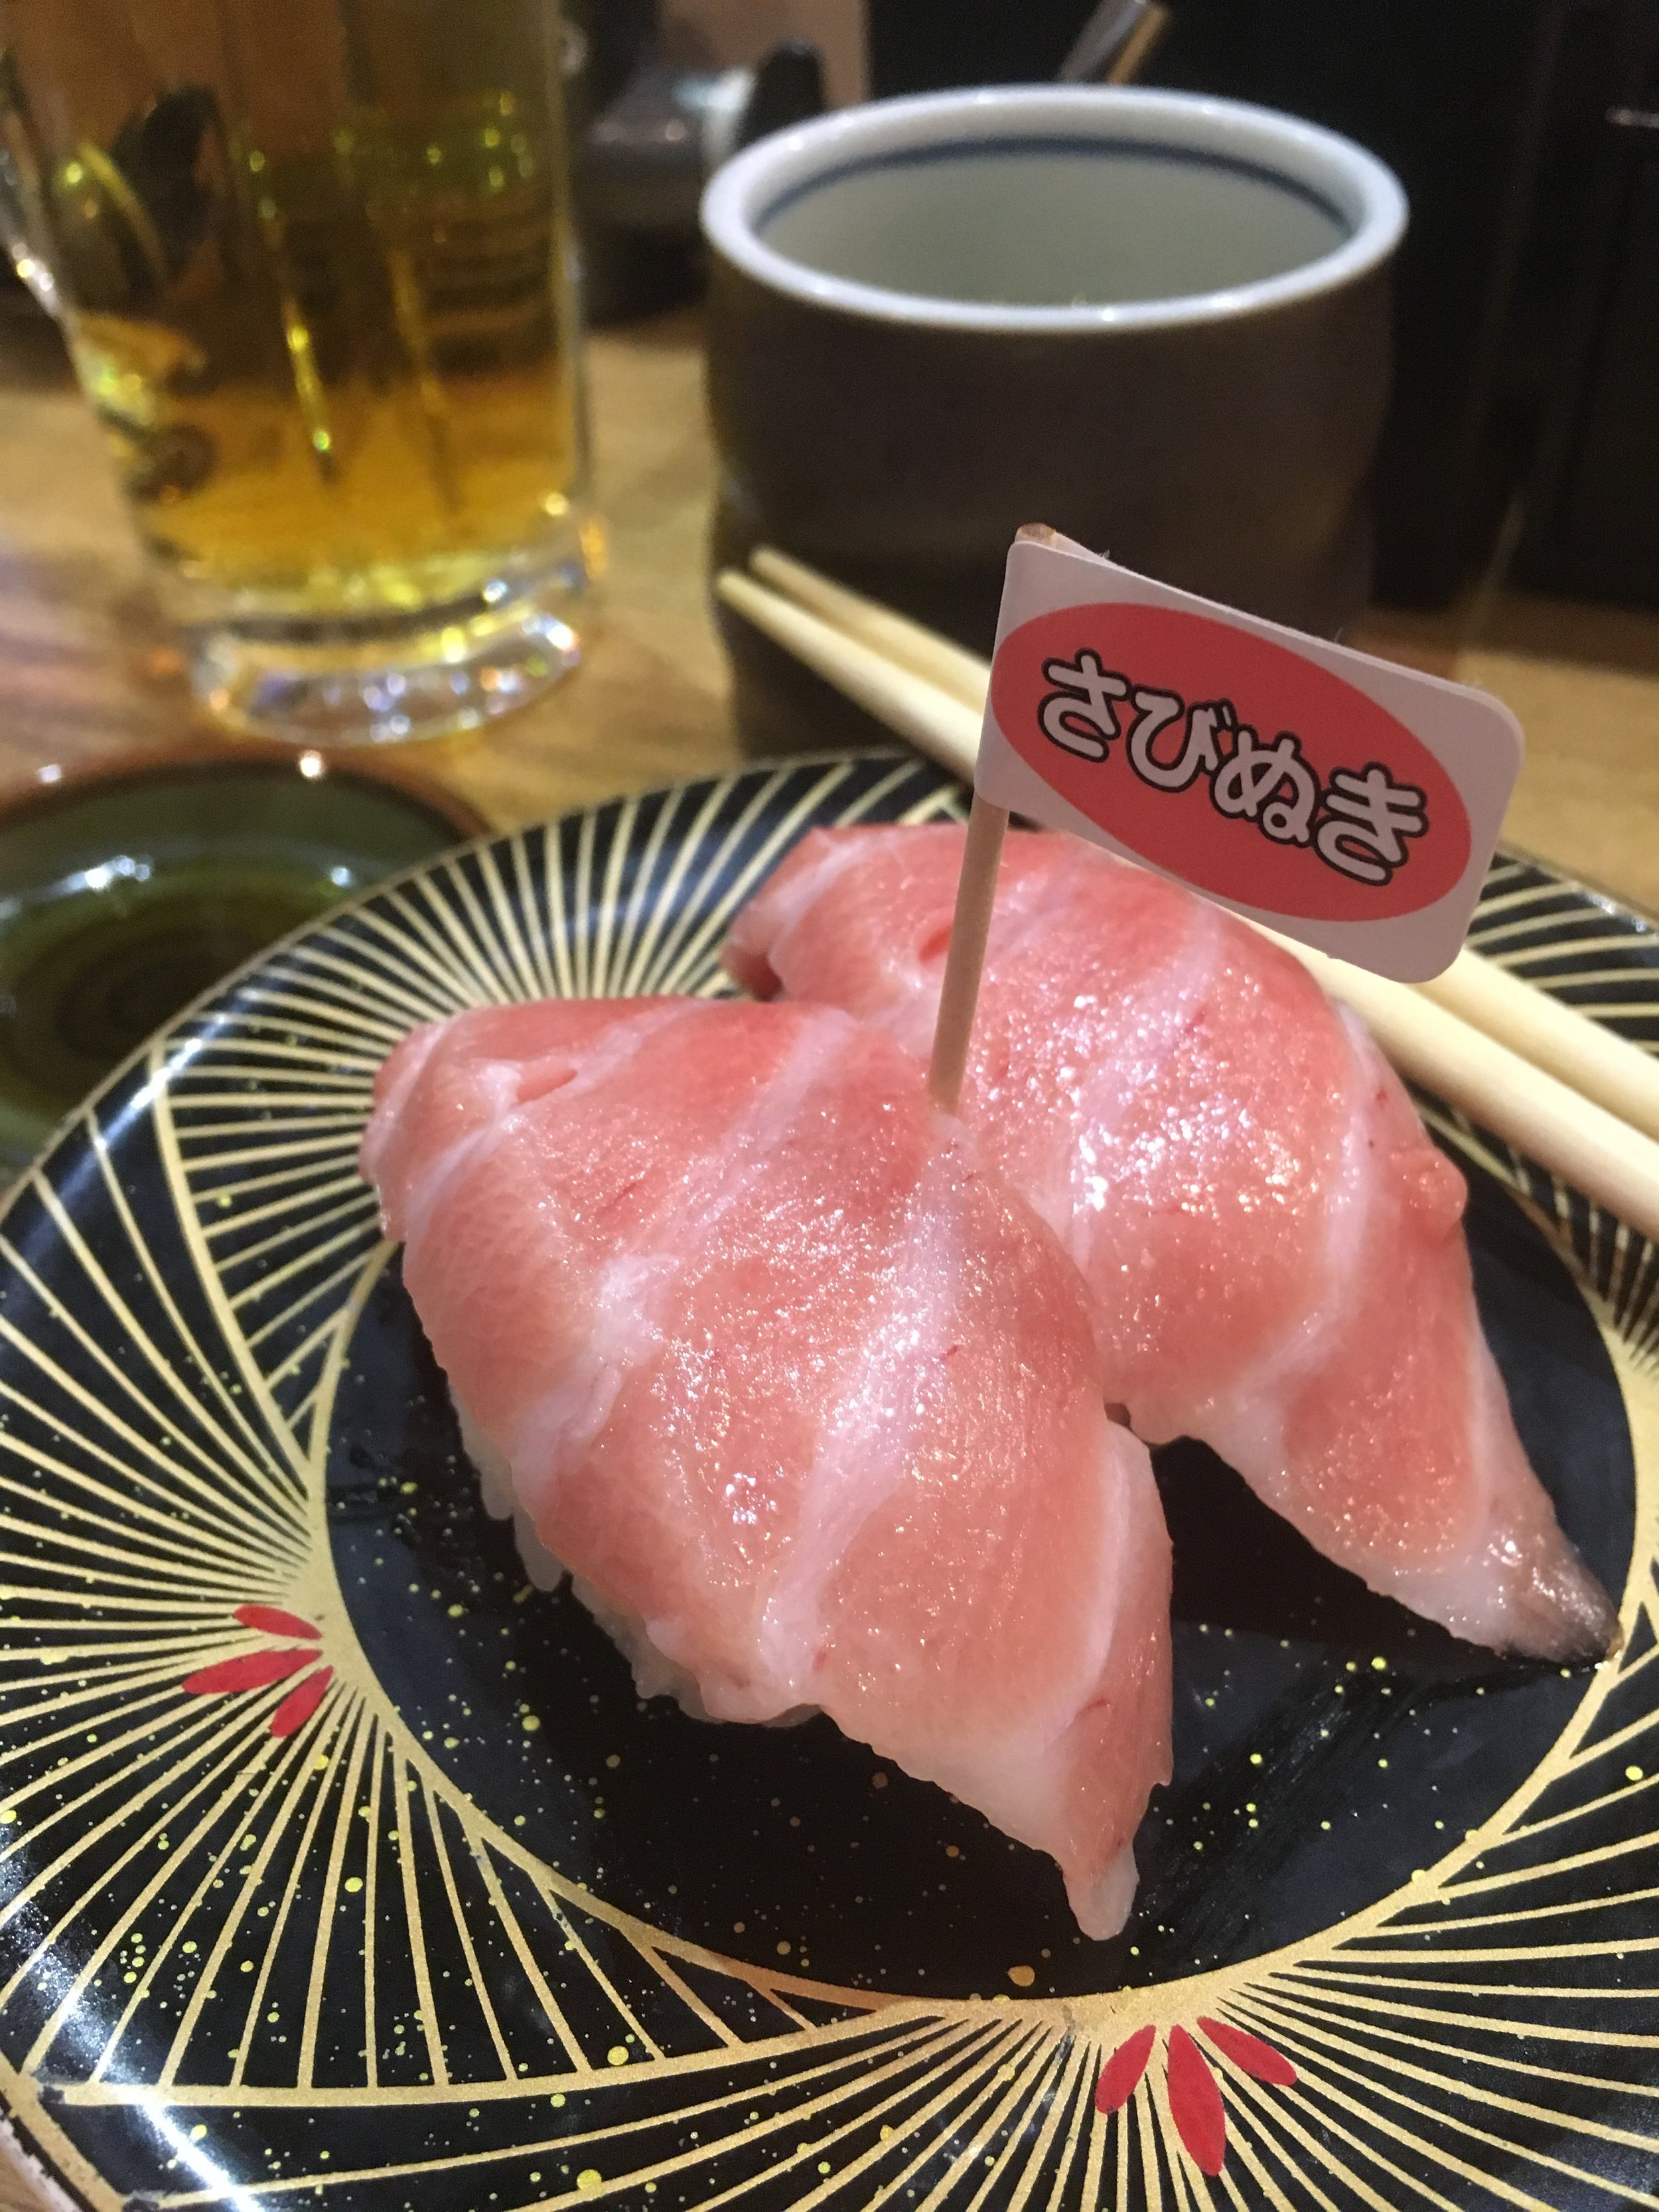 Fatty tuna from our favorite sushi joint